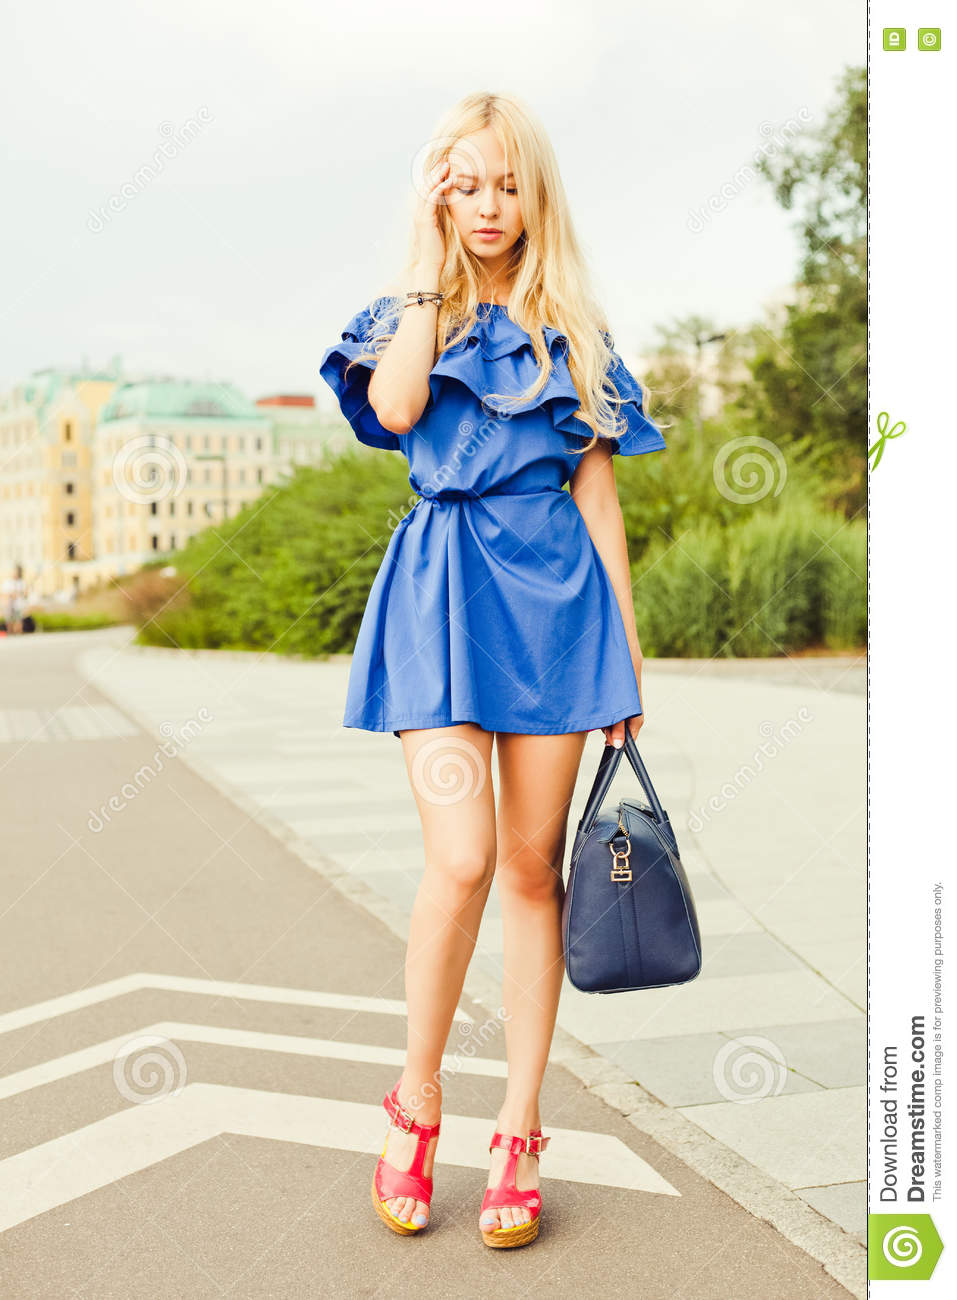 Outdoor summer smiling lifestyle portrait of pretty young woman with big blue handbag. Long blond hairs, blue outfit in